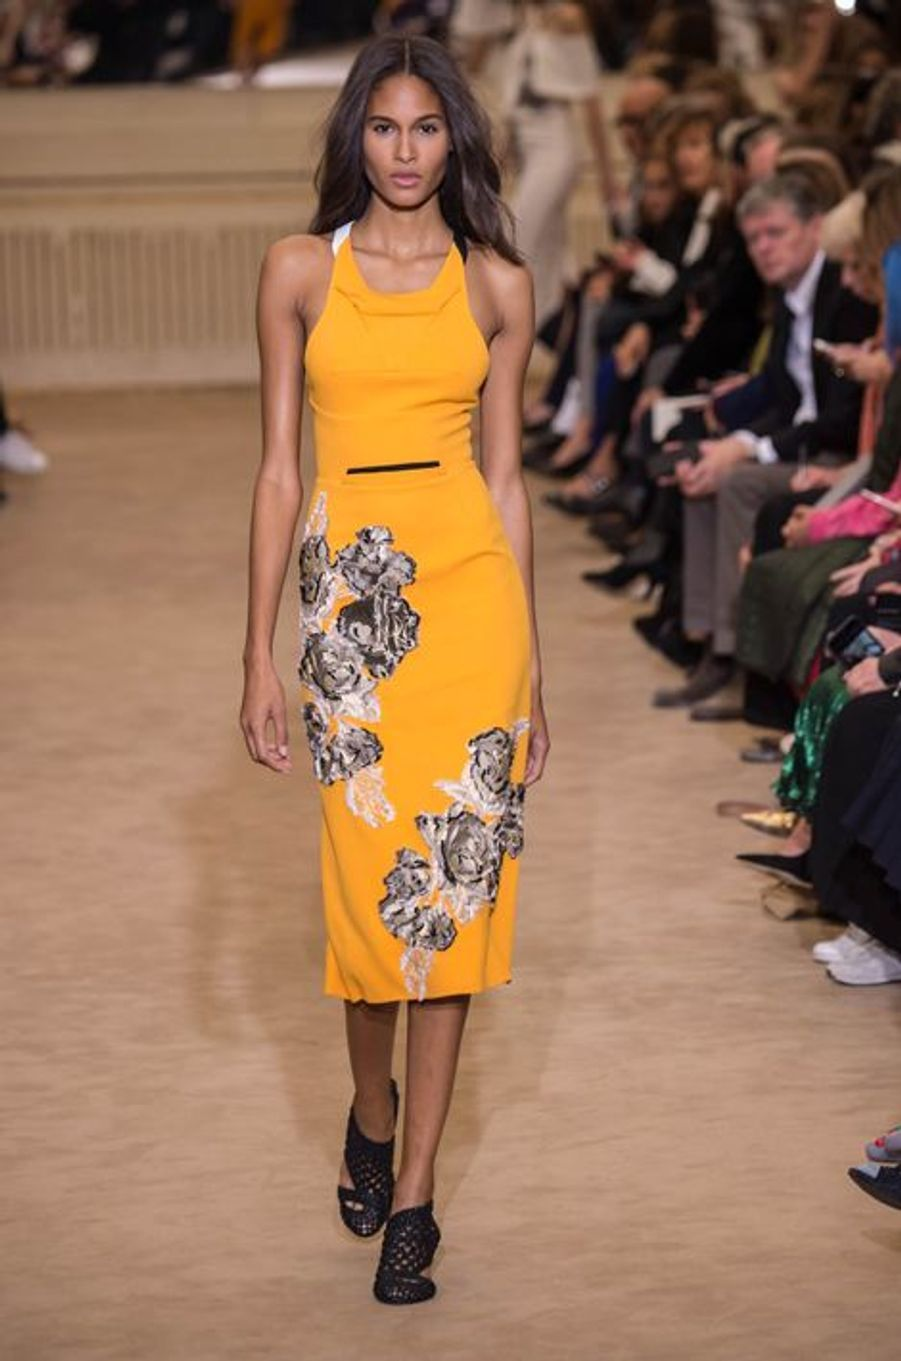 Roland Mouret célèbre sa Galaxy Dress pour la Fashion week de Paris